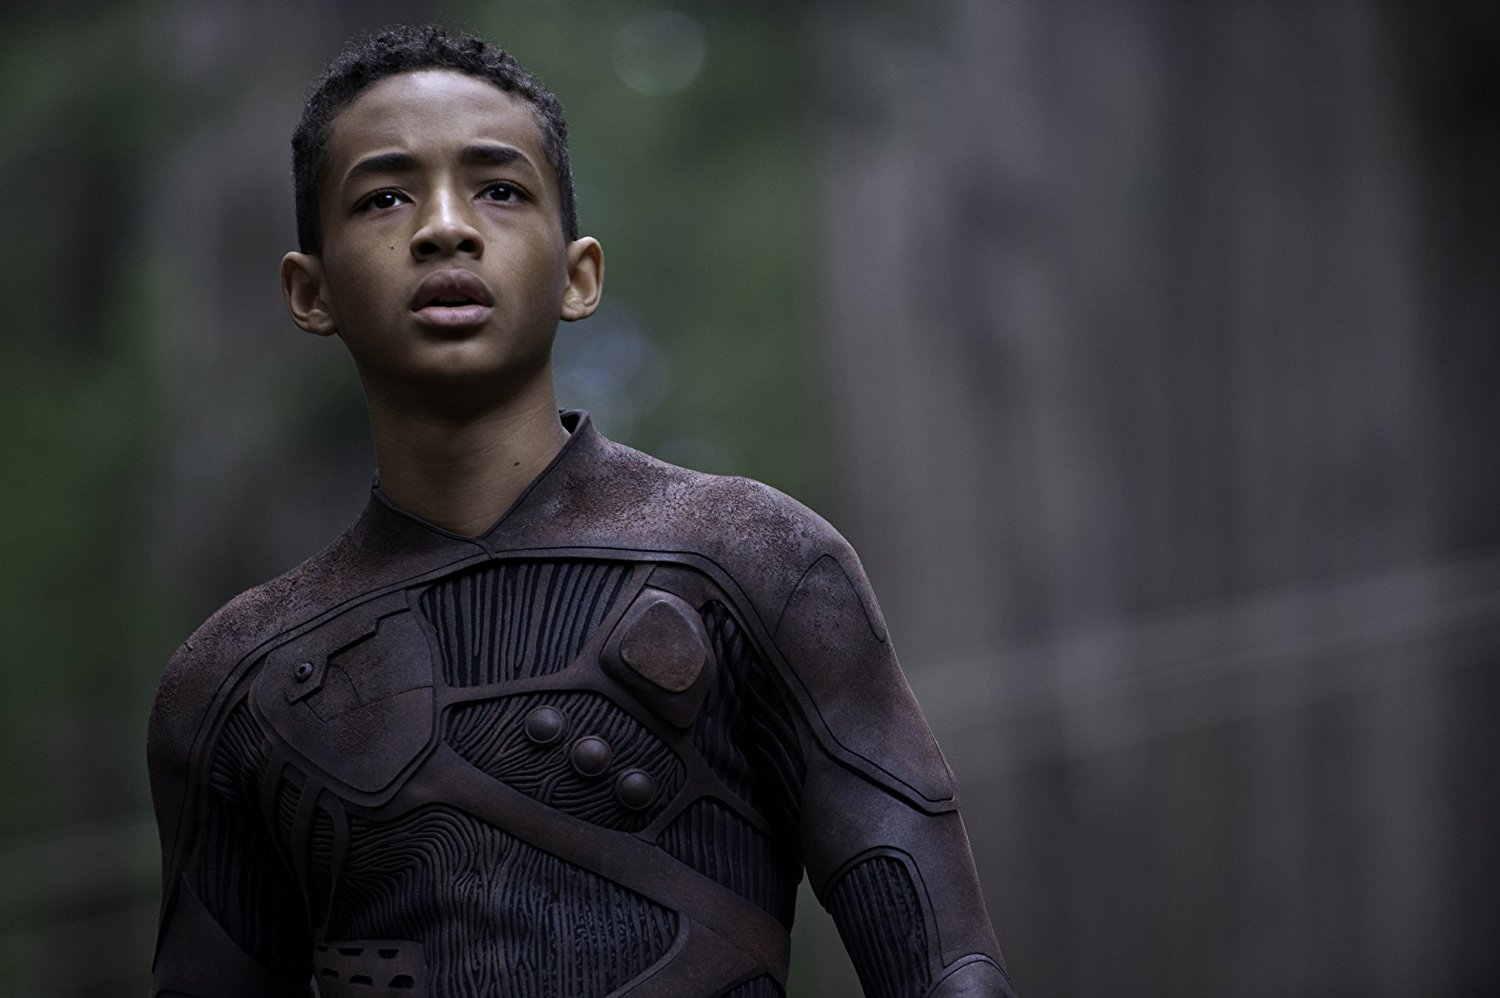 Jaden Smith in After Earth (2013)